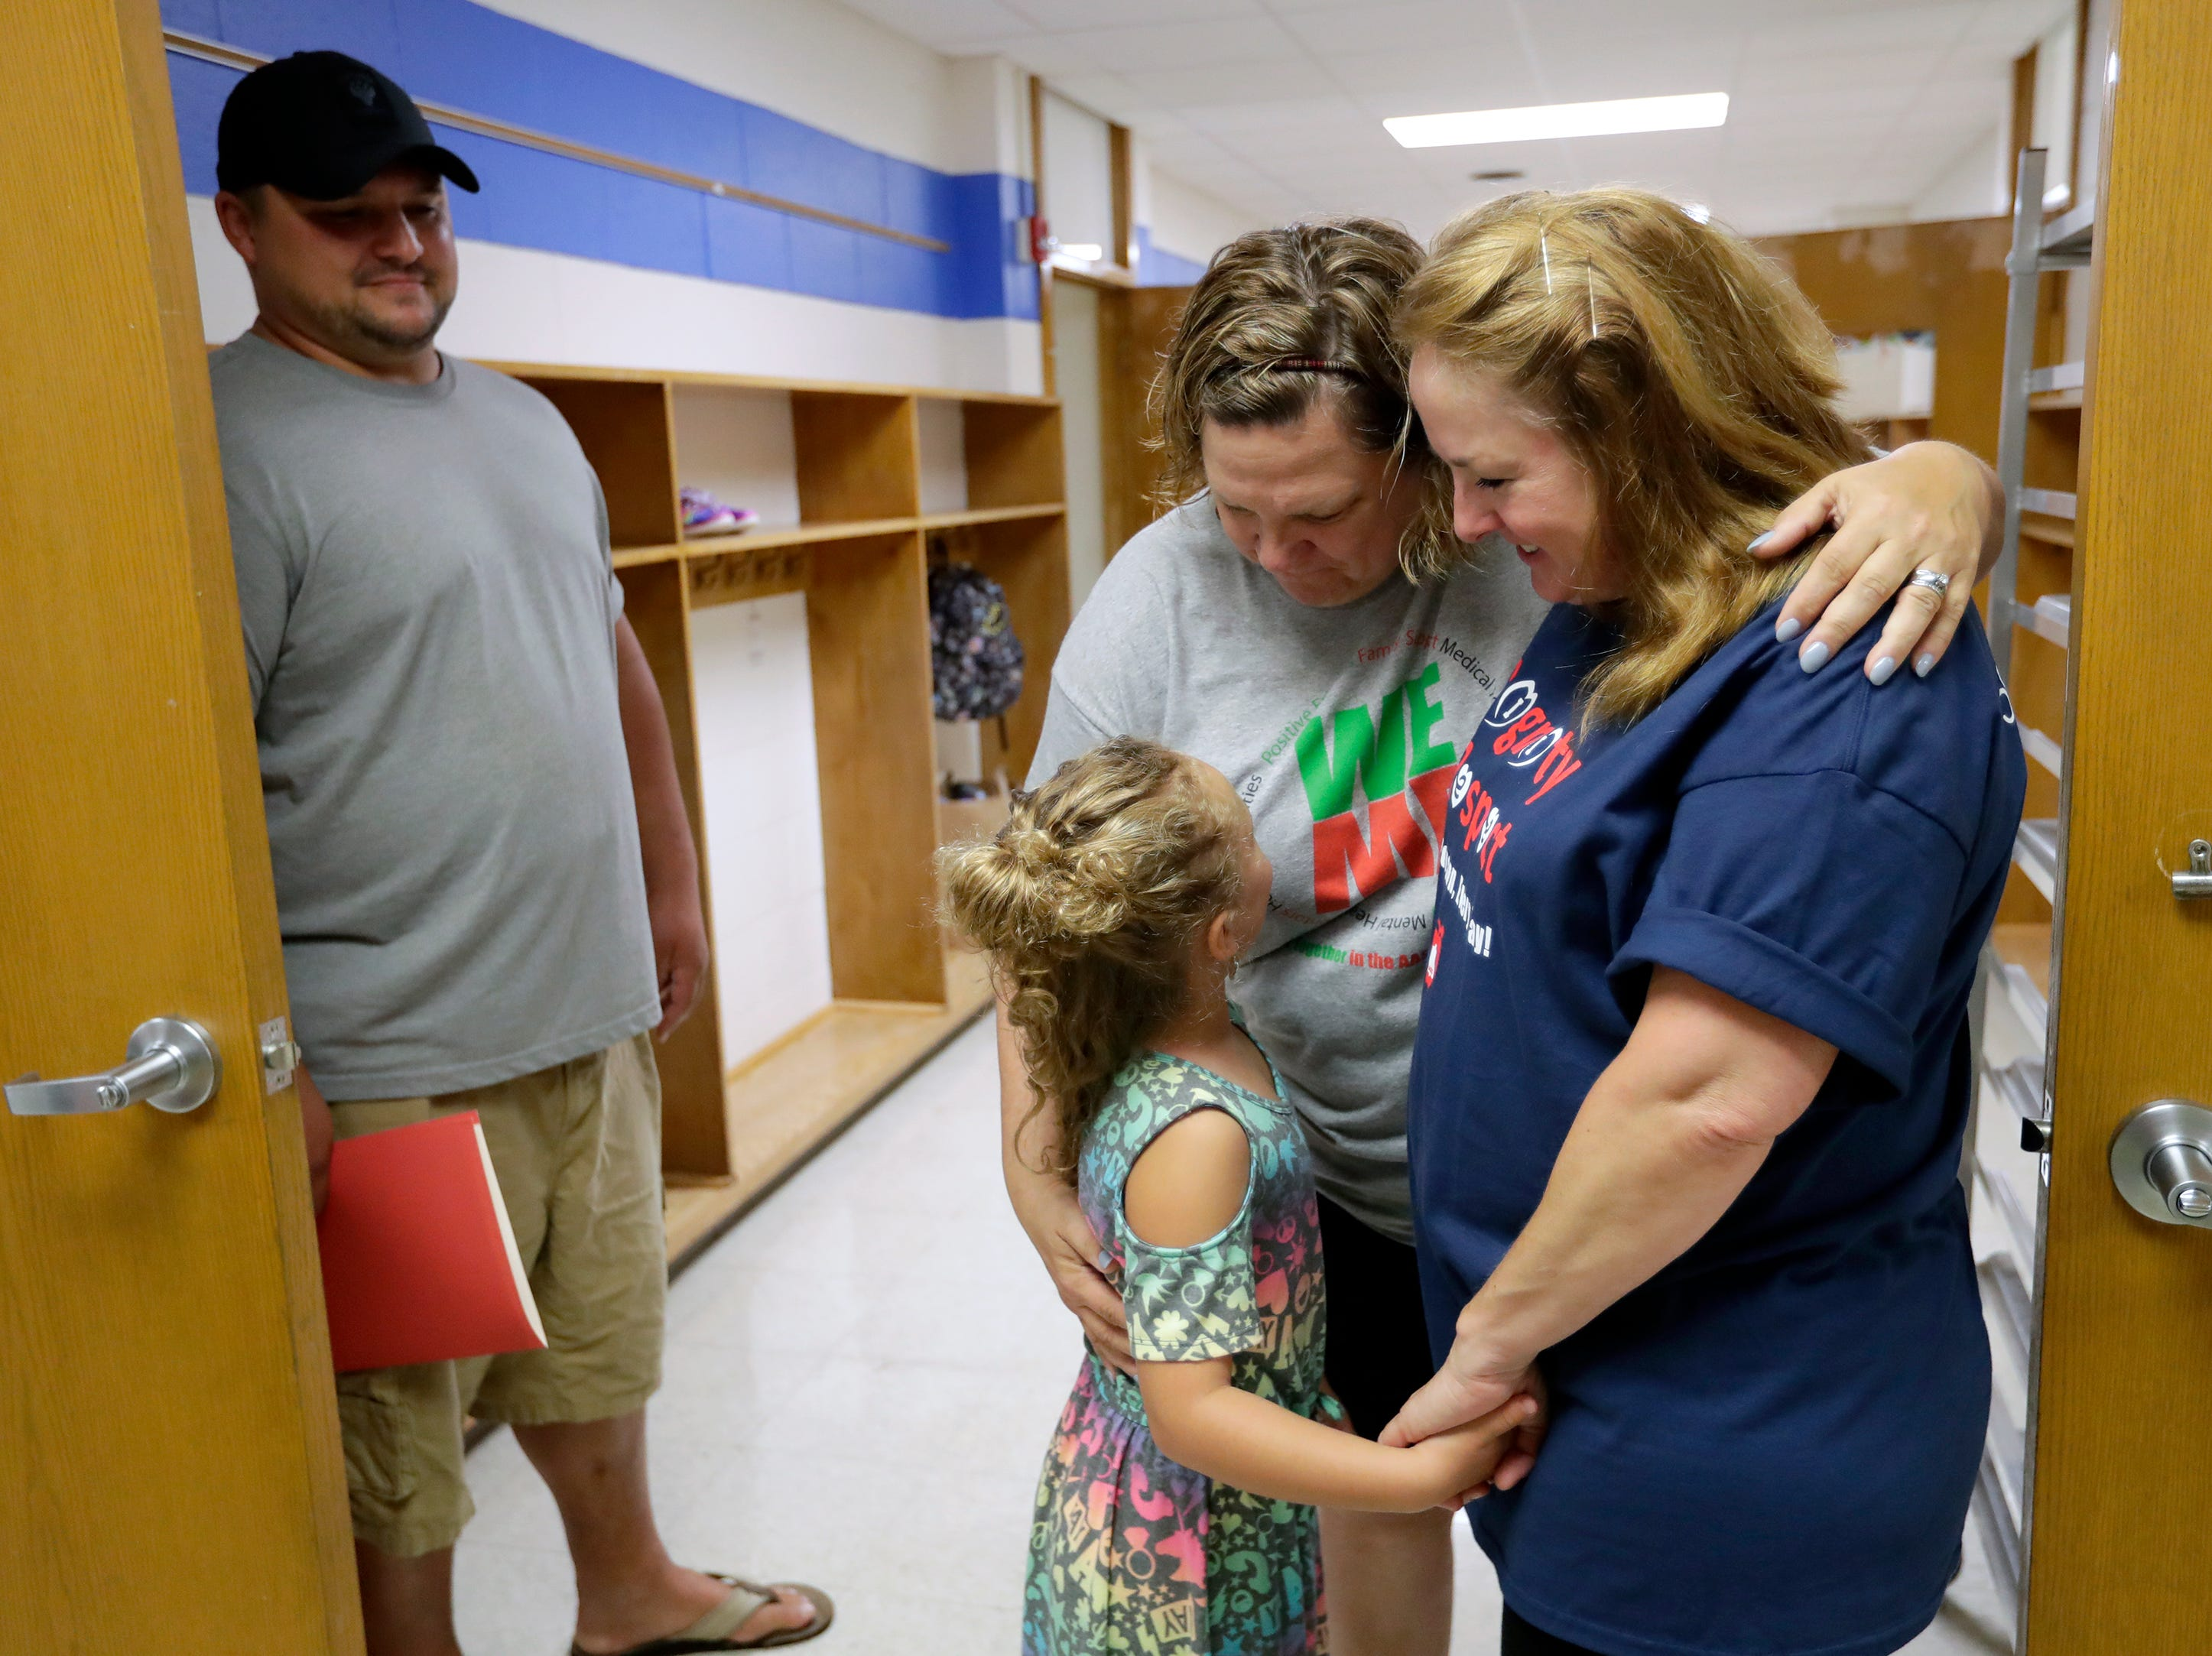 Ryan Merow, left, looks on as his daughter Reese, 6, is welcomed back to school by teachers Deb Hodson and Deb Tuttle, right, Tuesday, Sept. 4, 2018, at Badger Elementary School in Appleton, Wis. 